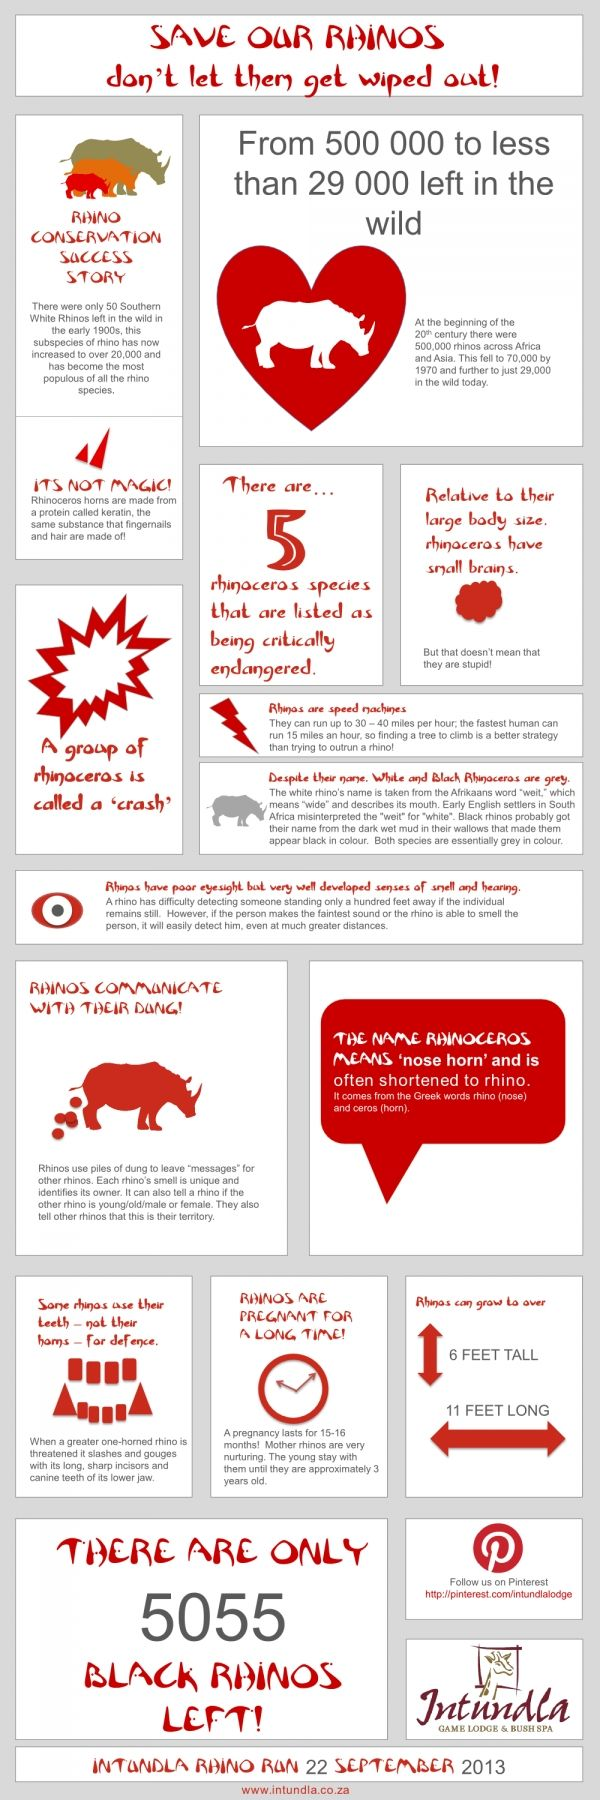 SAVE OUR RHINOS! - an infographic by Intundla for the Gauteng Rhino Run 22 September 2013.